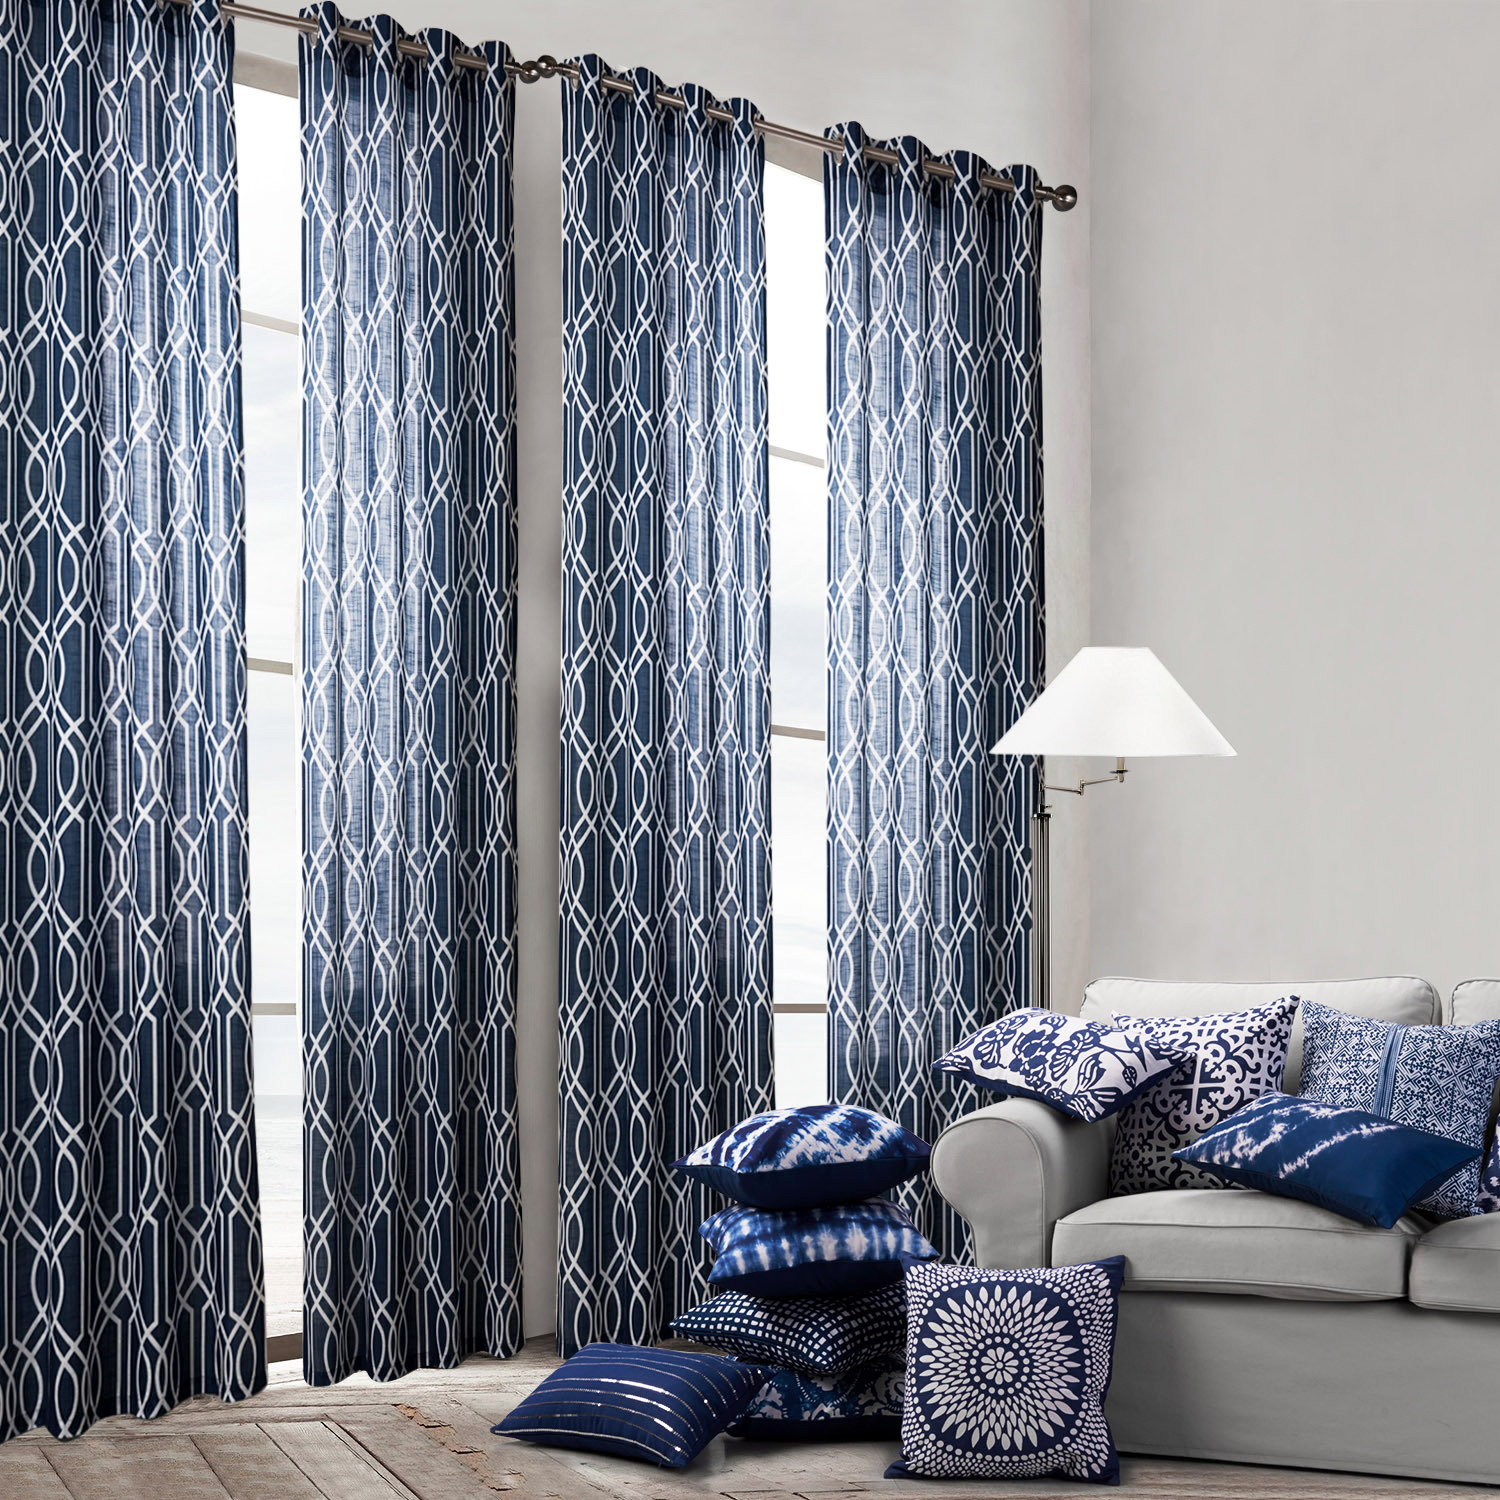 Fabulous Us 23 99 European And American Style 100 Poly Printed Curtains Living Room Bed Room Window Treatments Screens In Curtains From Home Garden On Beutiful Home Inspiration Xortanetmahrainfo